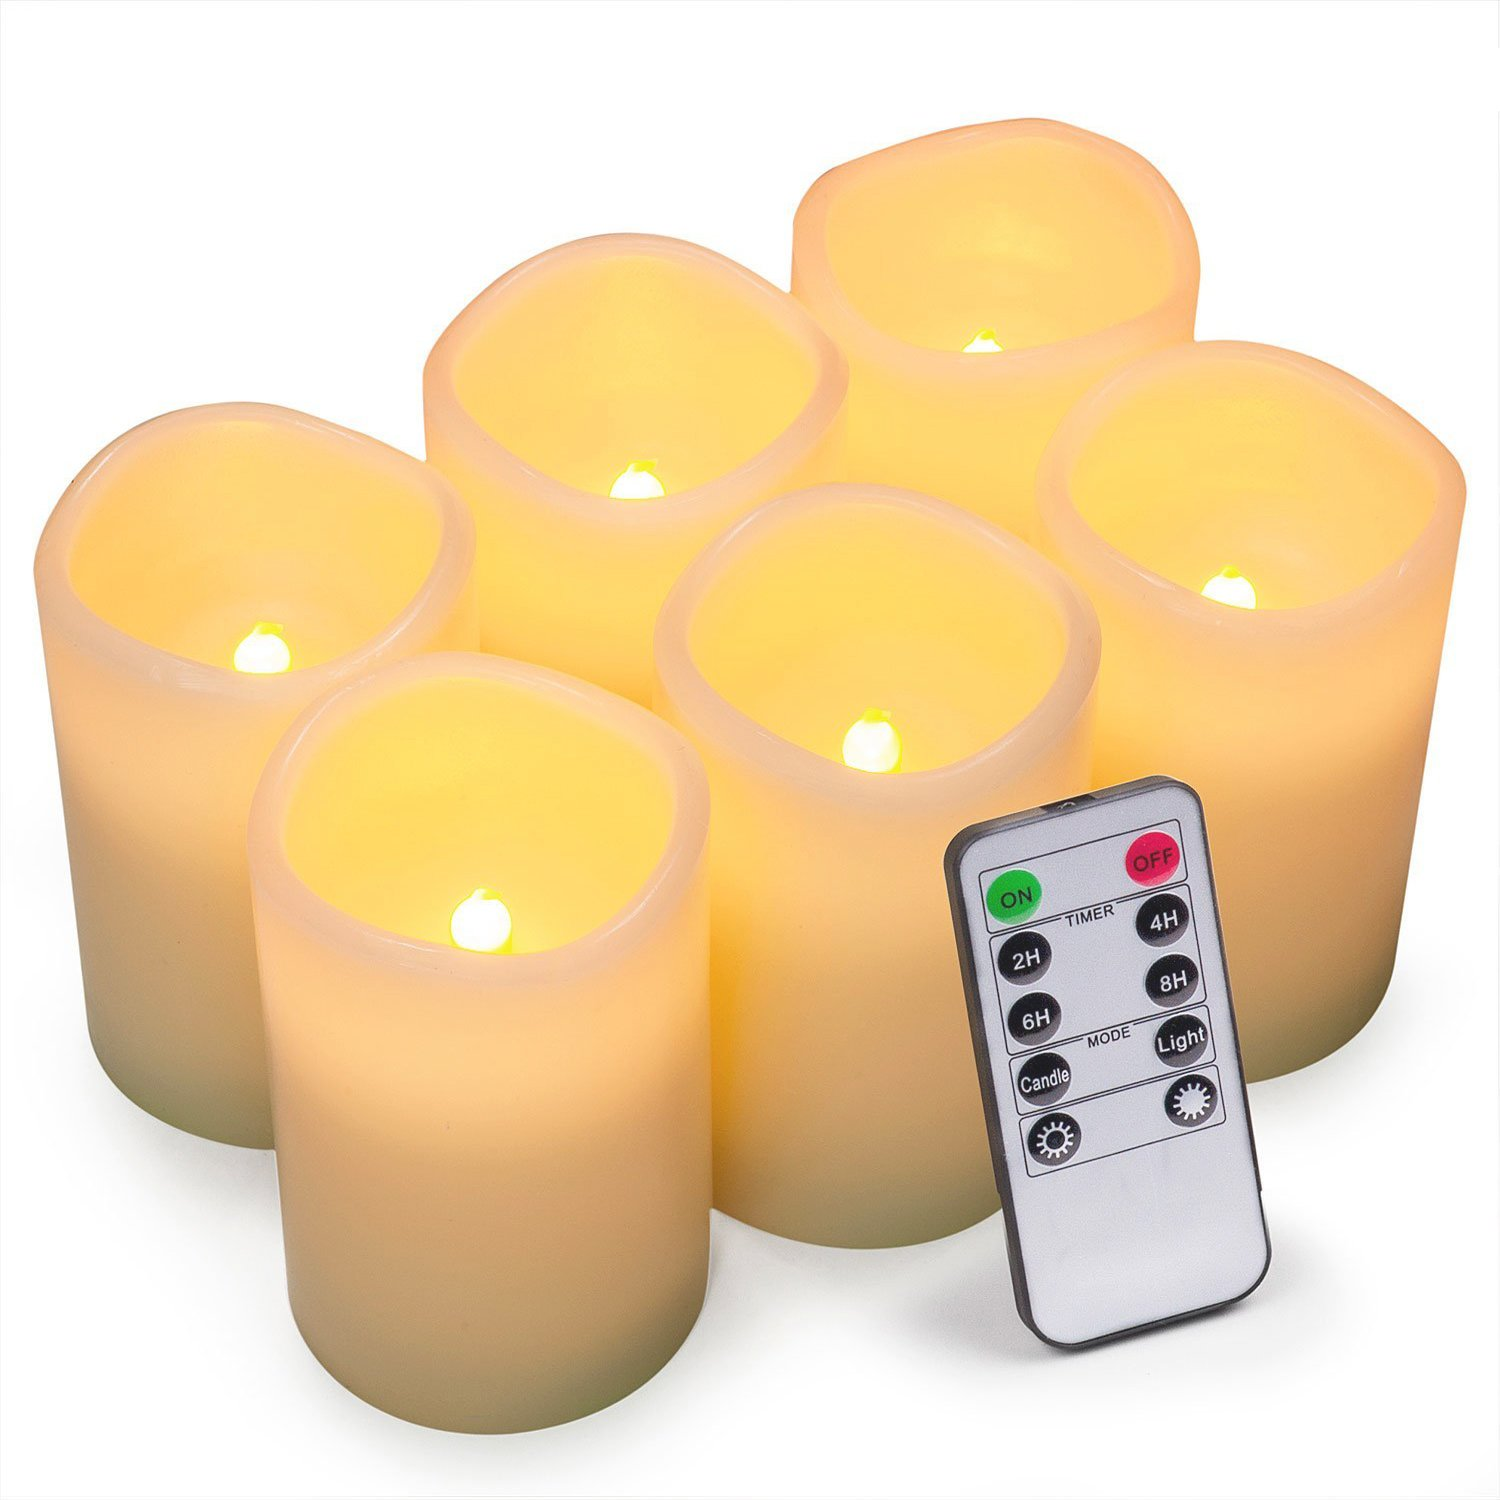 Bingolife Real Wax Flameless Weatherproof Outdoor and Indoor LED Candles 3'' x 4'' with Remote Control & Timer - Set of 6 (Ivory)